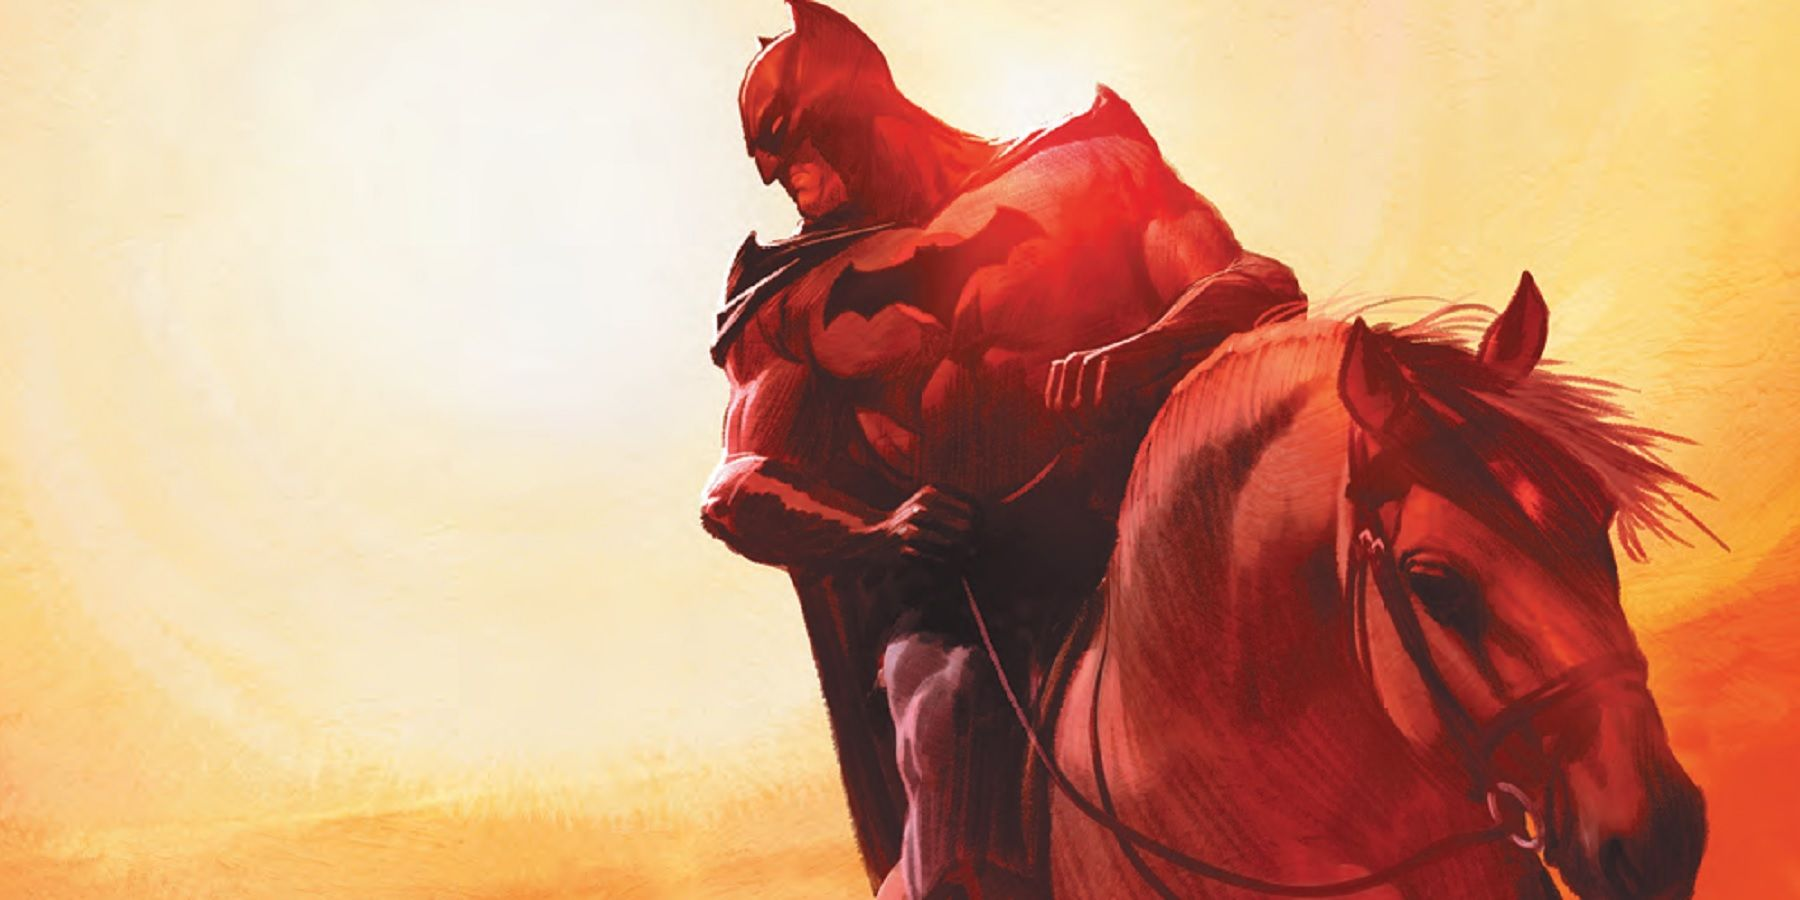 Batman Reveals Something Even More Powerful Than a Lazarus Pit